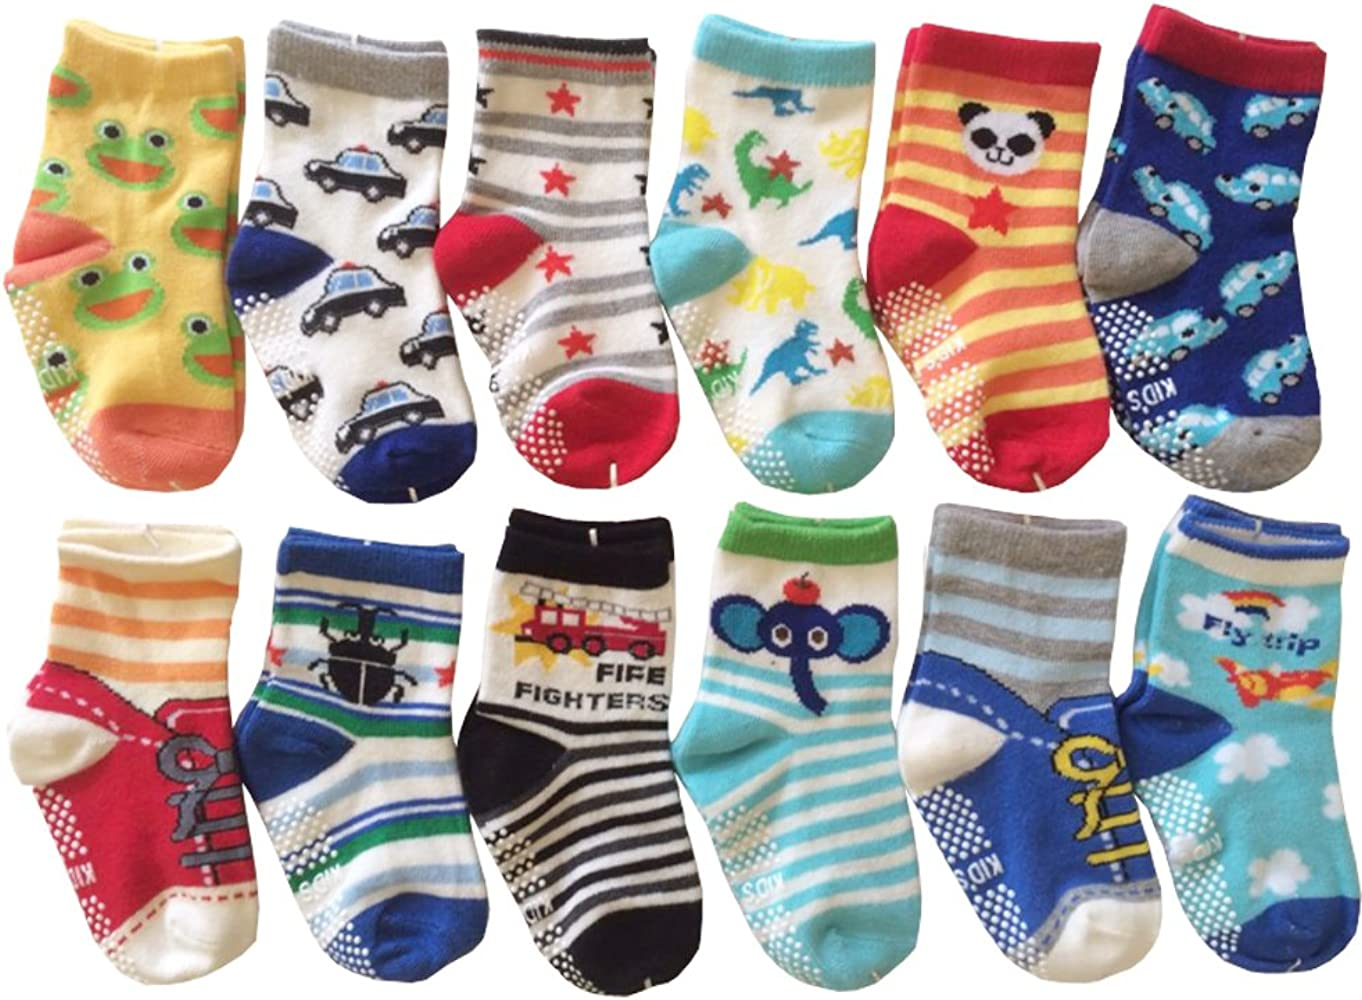 4pairs Baby Boy Girls Anti Slip Socks Toddler Kid Cotton for Age 0-24Months